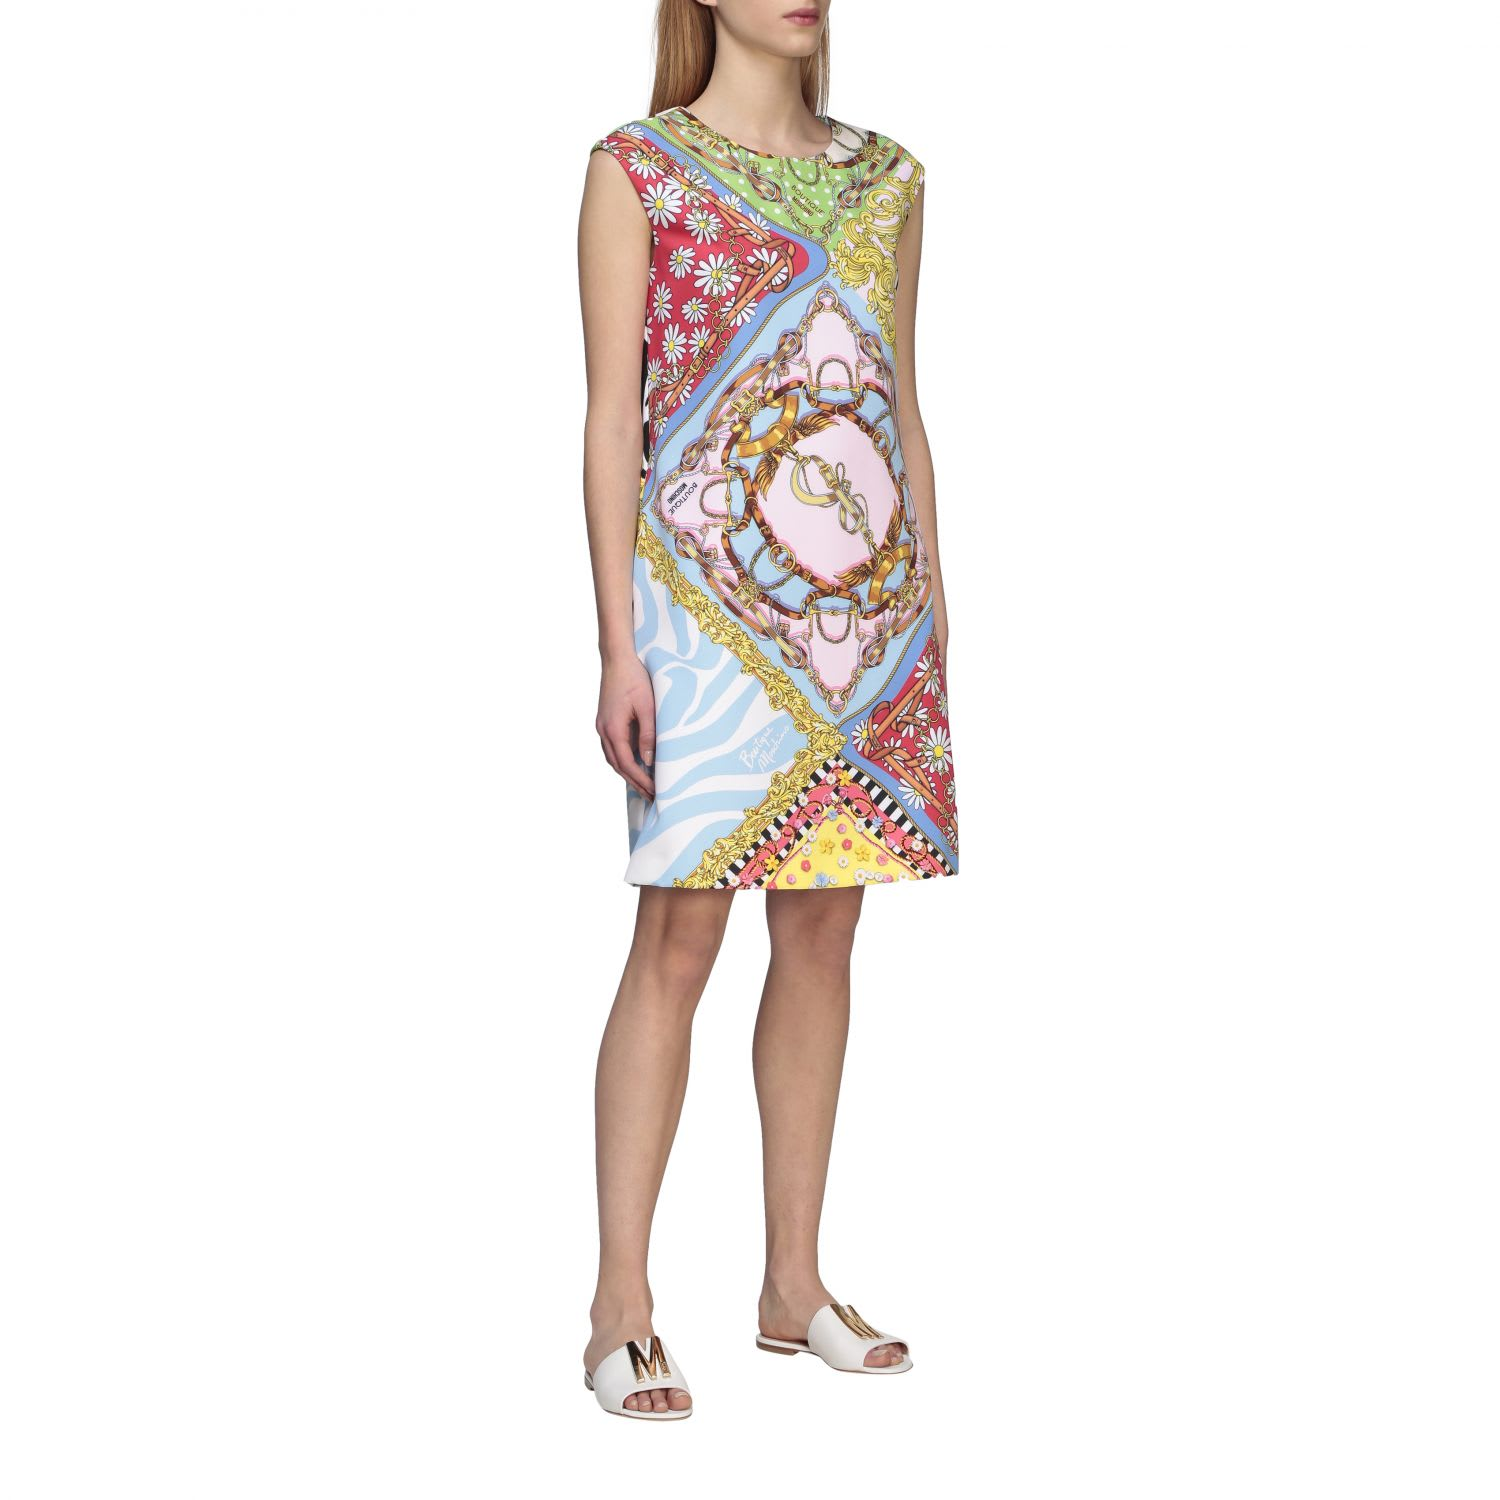 Buy Boutique Moschino Dress Boutique Moschino Dress With Mix Of Prints online, shop Boutique Moschino with free shipping